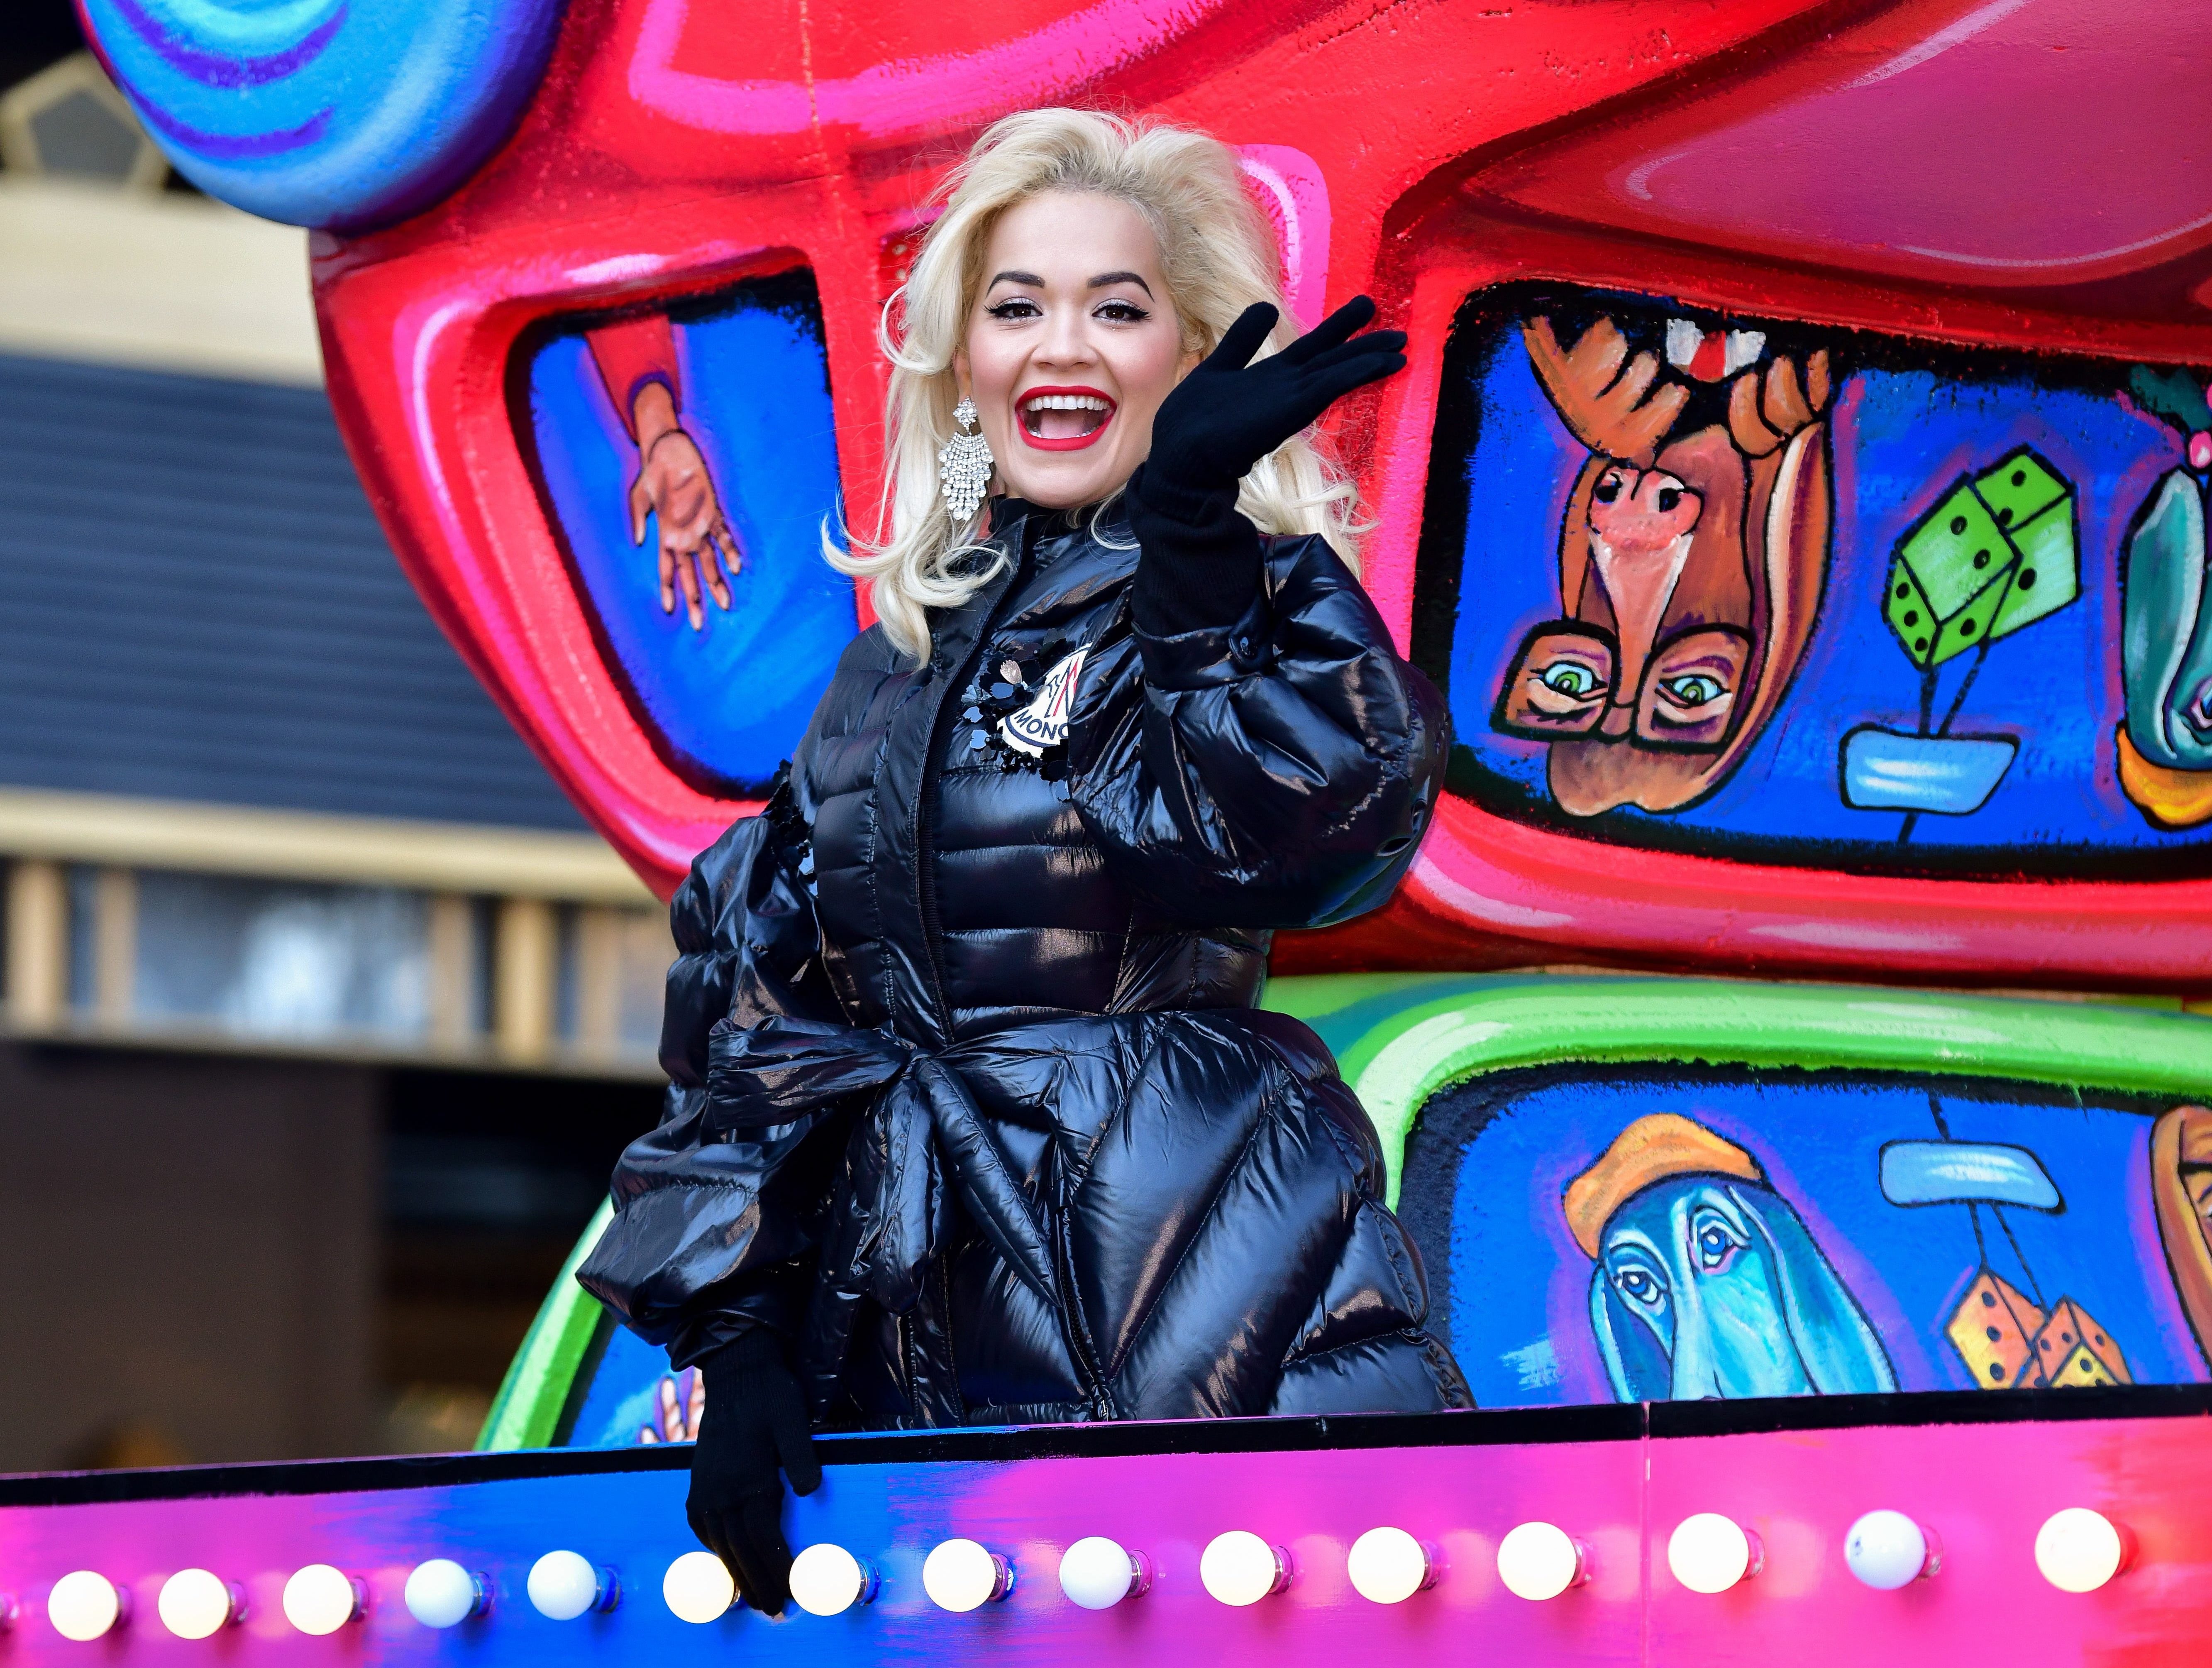 NEW YORK, NY - NOVEMBER 22:  Rita Ora attends the 92nd Annual Macy's Thanksgiving Day Parade on November 22, 2018 in New York City.  (Photo by James Devaney/WireImage,) ORG XMIT: 775240086 ORIG FILE ID: 1064359288